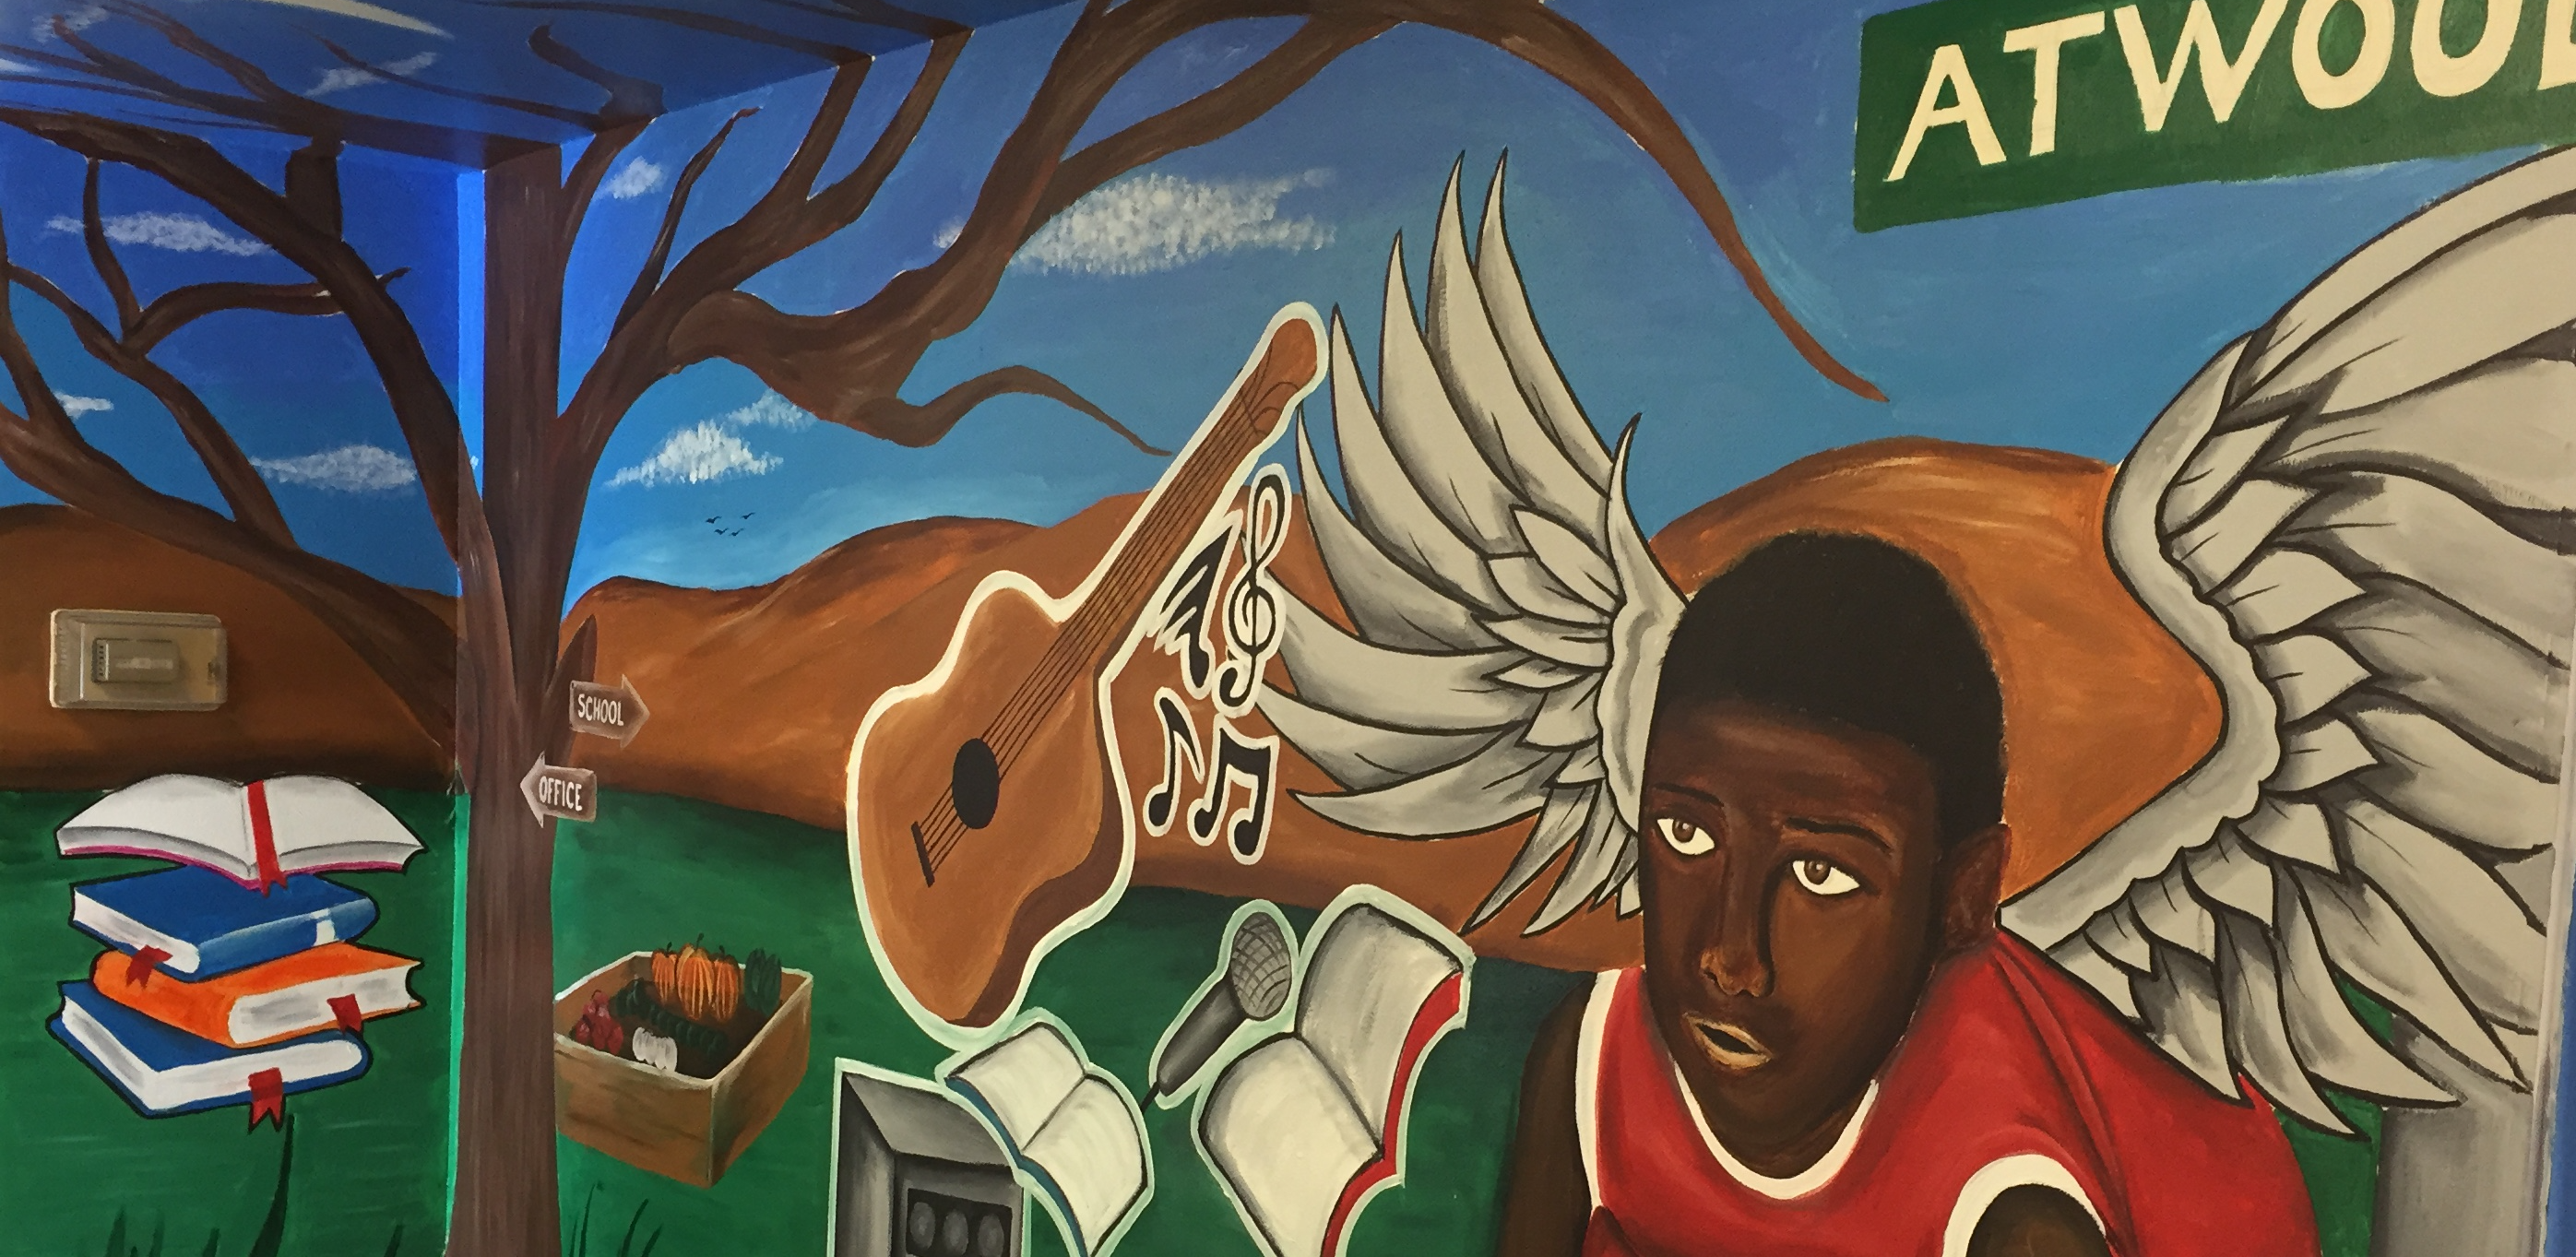 "Madison Public Library's Bubbler Making Justice ""Welcome"" mural residency with Rodrigo Carapia"